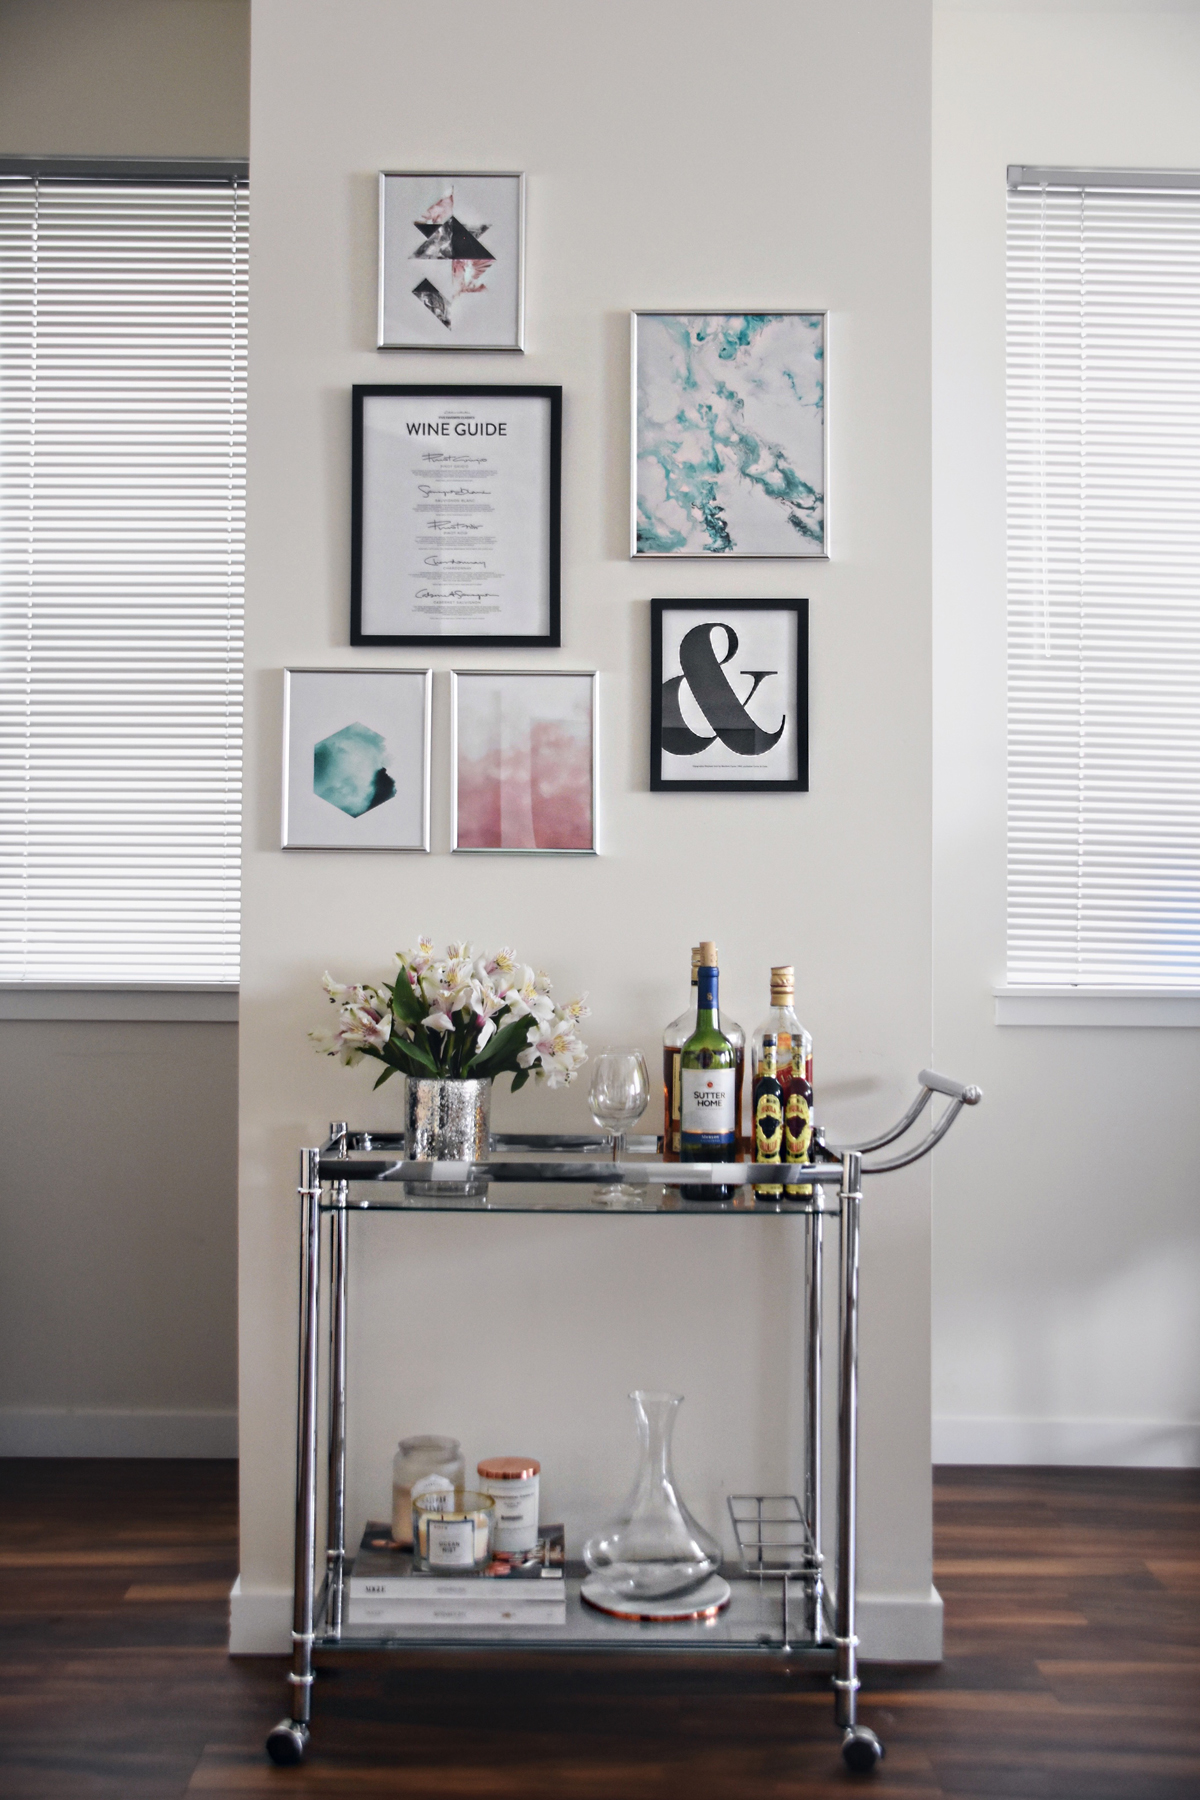 Desenio wall art, posters and Amazon Silver bar cart